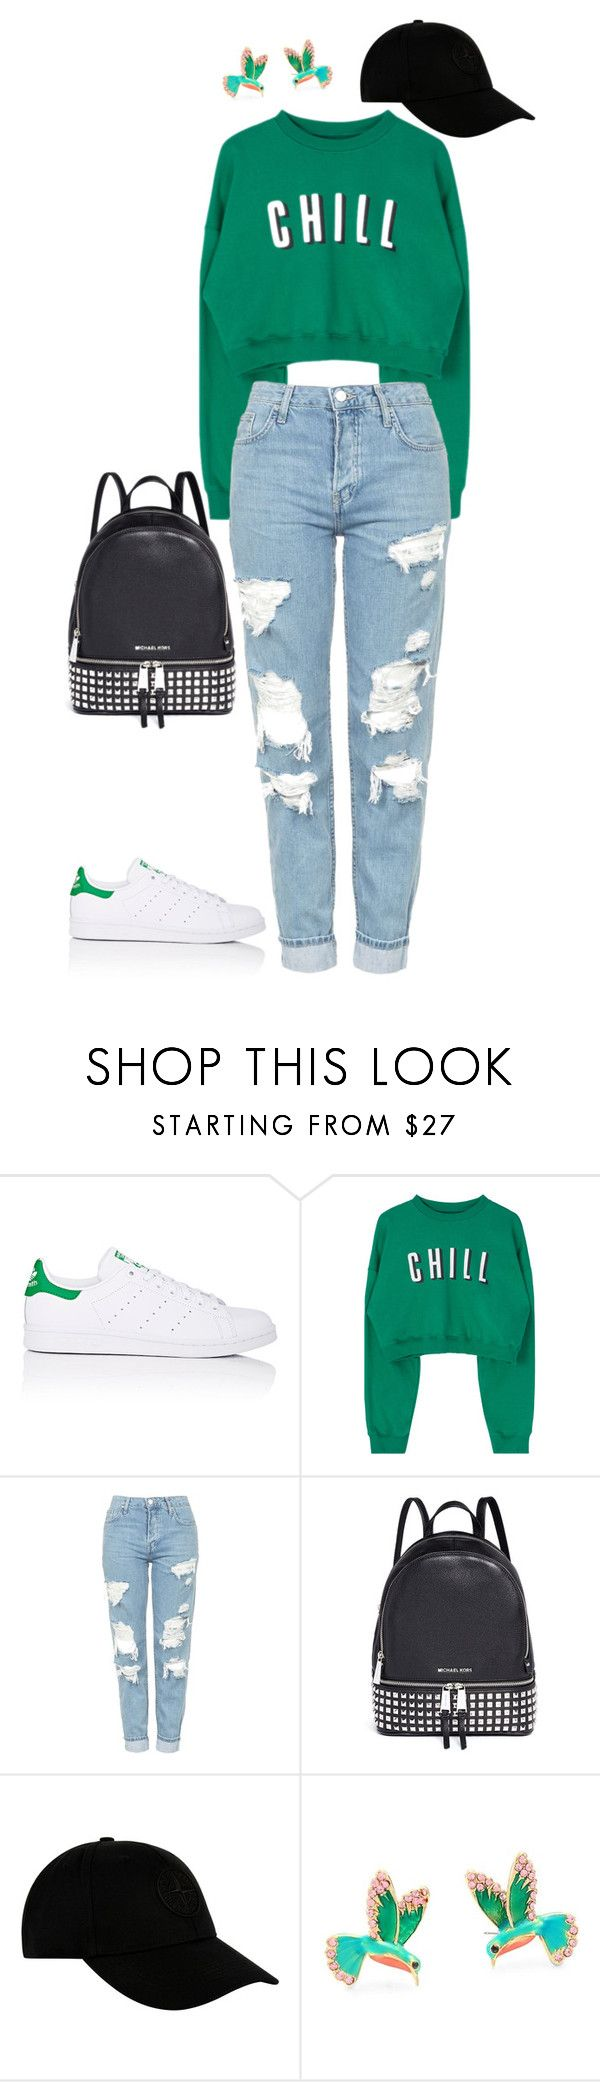 """""""Casual Outfit"""" by sarahlong3019 ❤ liked on Polyvore featuring adidas, Topshop, Michael Kors, STONE ISLAND and Kate Spade"""